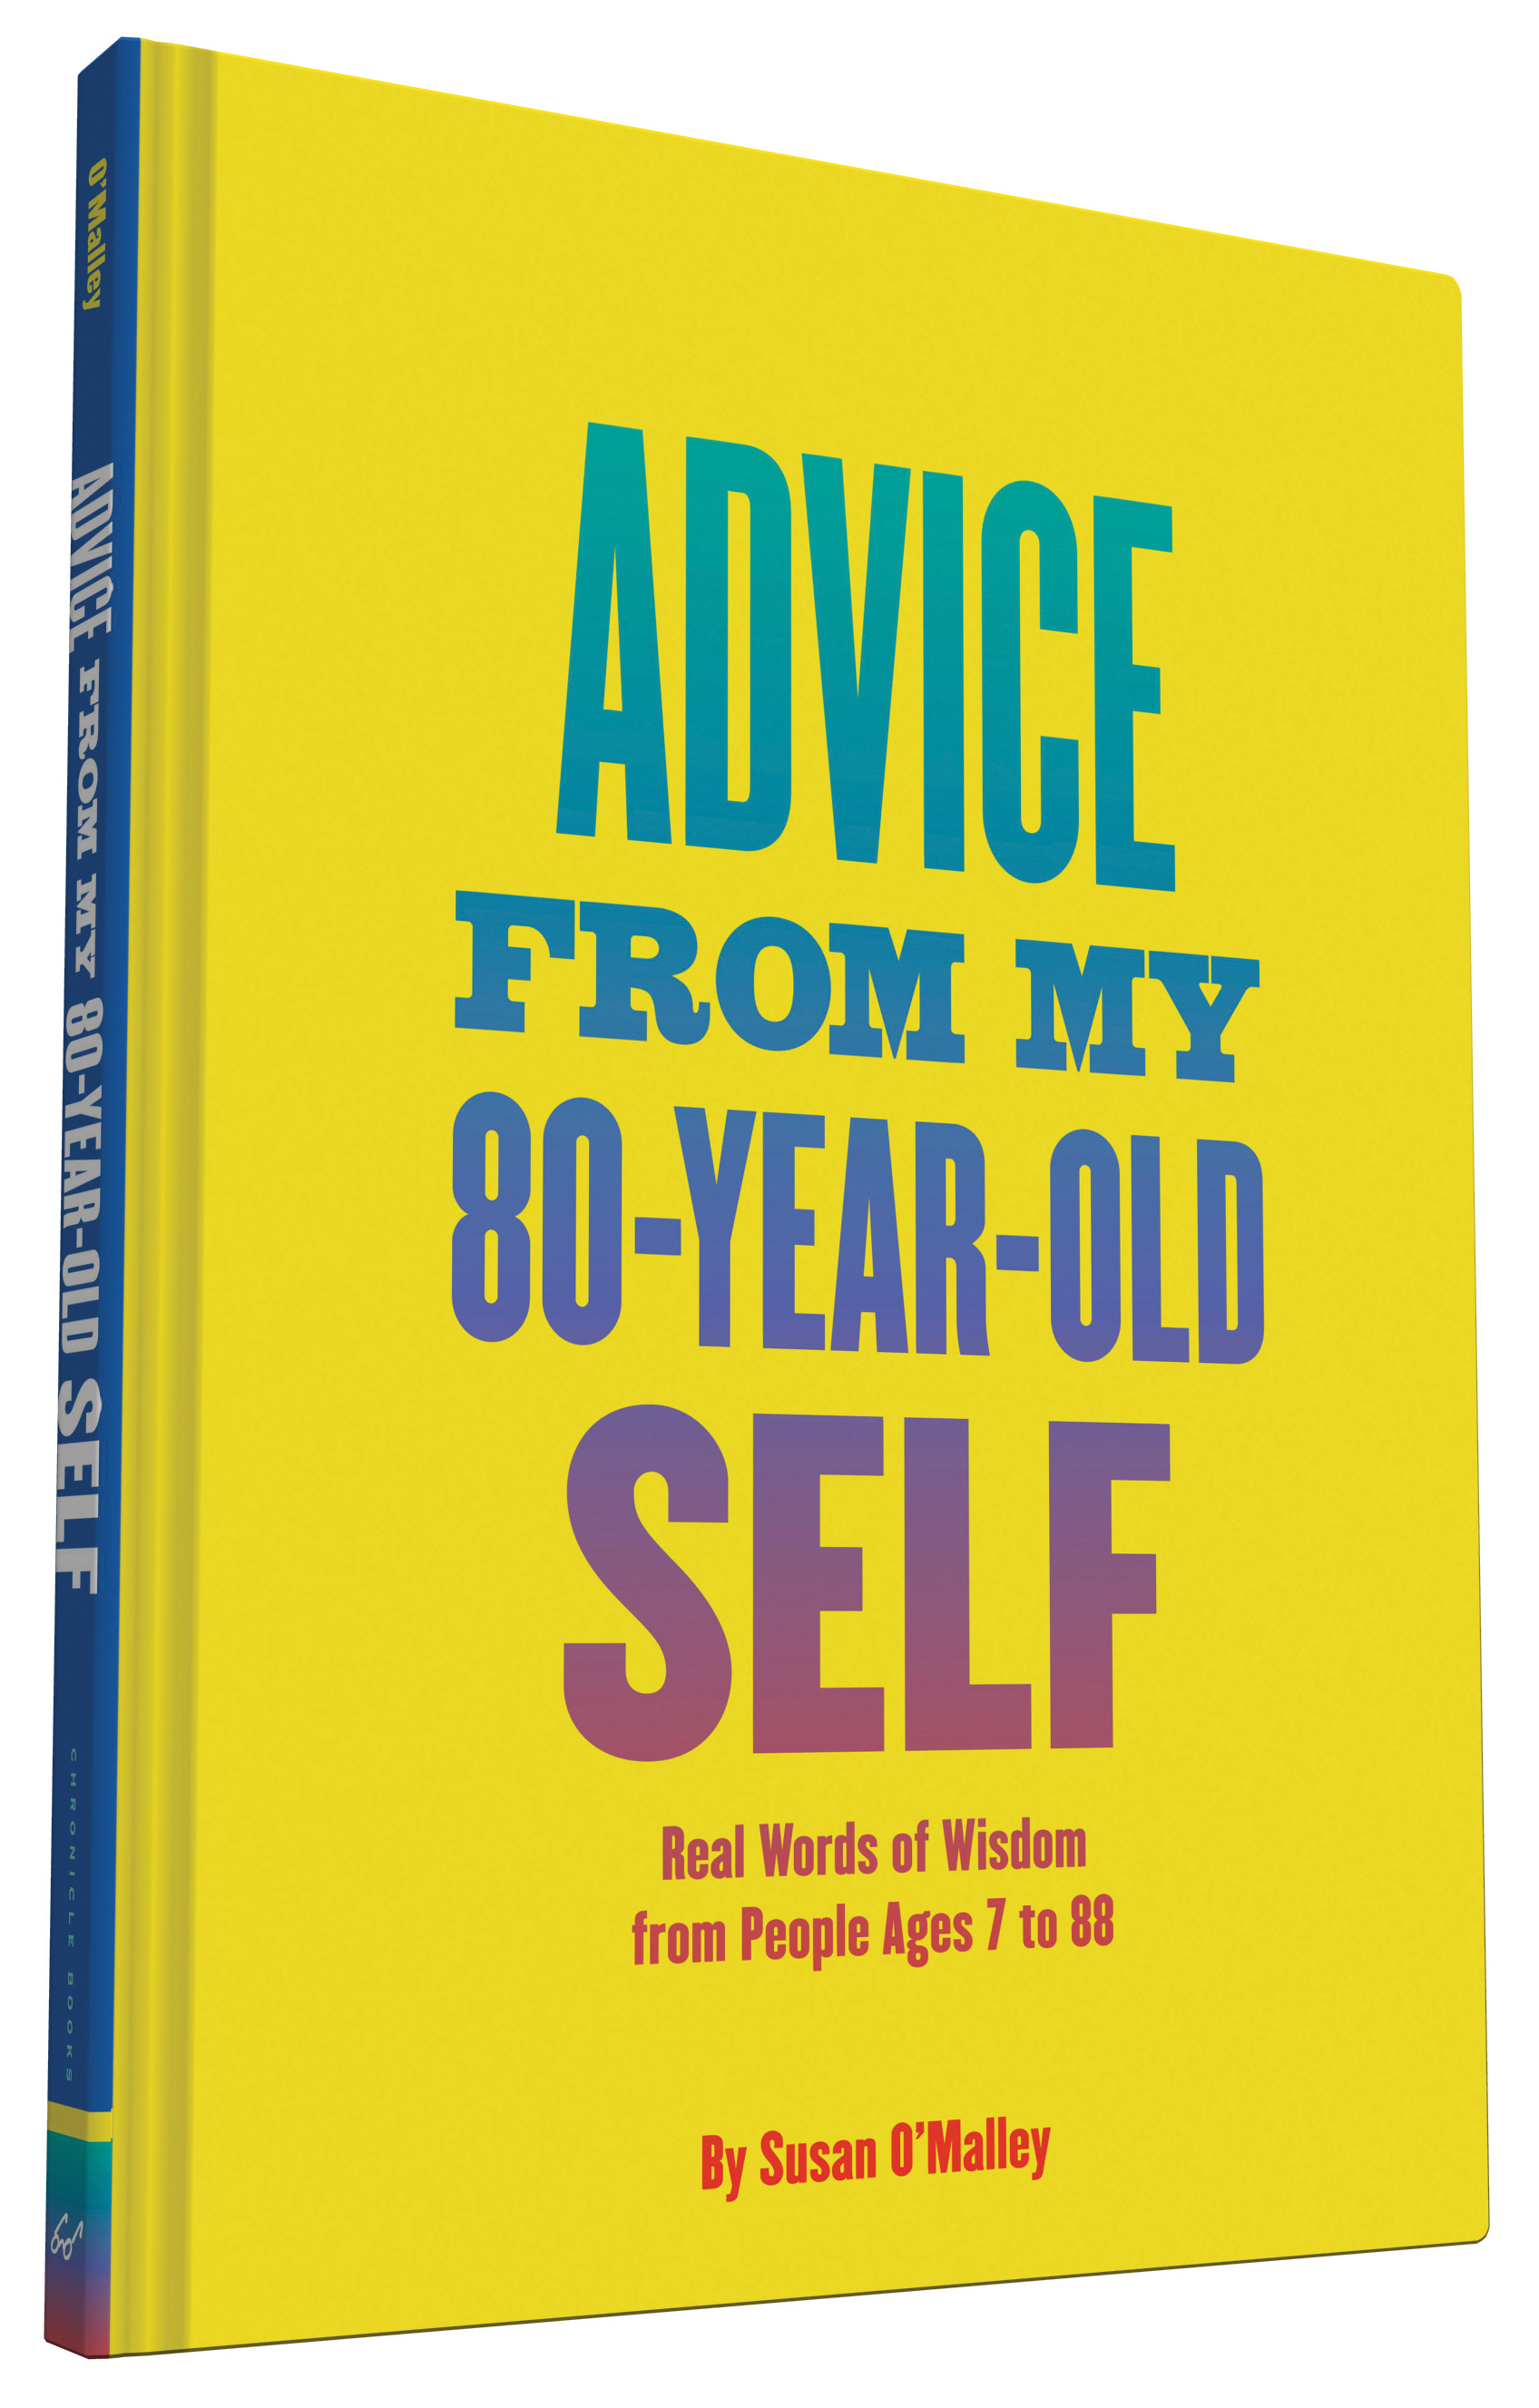 Advice from My 80-Year-Old Self: Real Words of Wisdom from People Ages 7 to 88 Susan OMalley